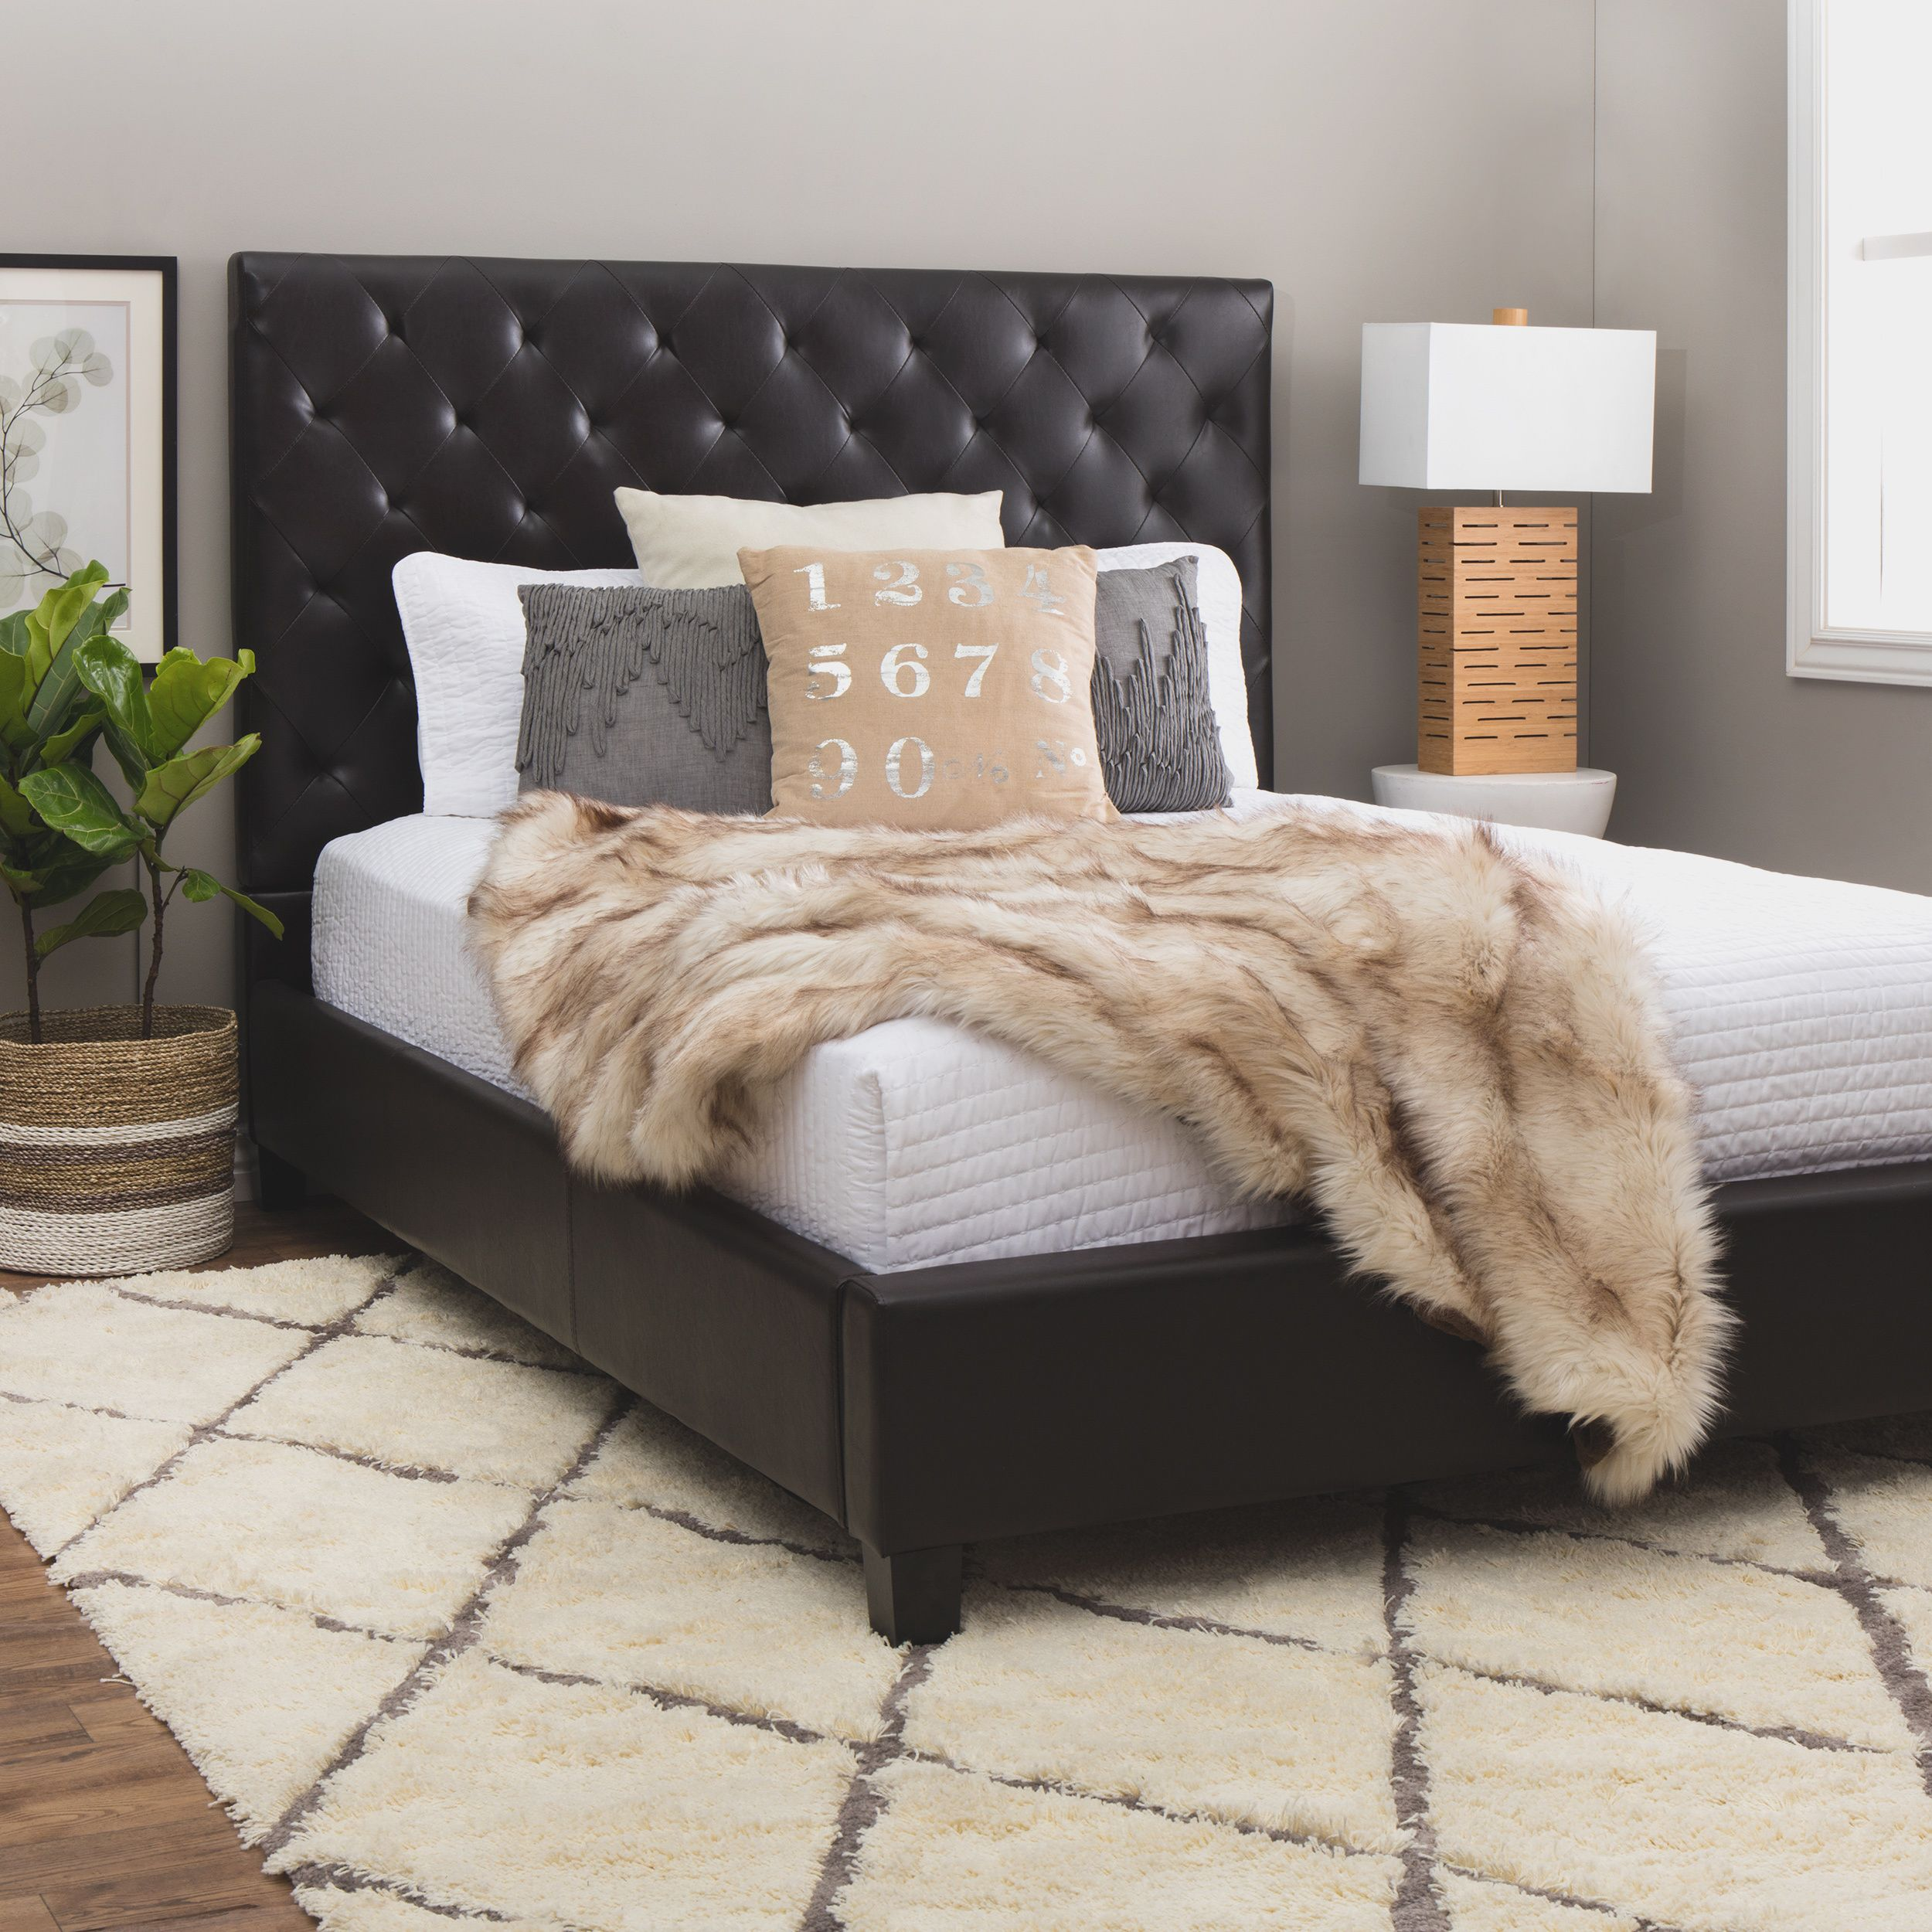 High Quality Your Inner Interior Decorator Will Love The Elegant Features The Sophie  Dark Brown Leather Queen Platform Bed Frame Offers To Your Home Decor.